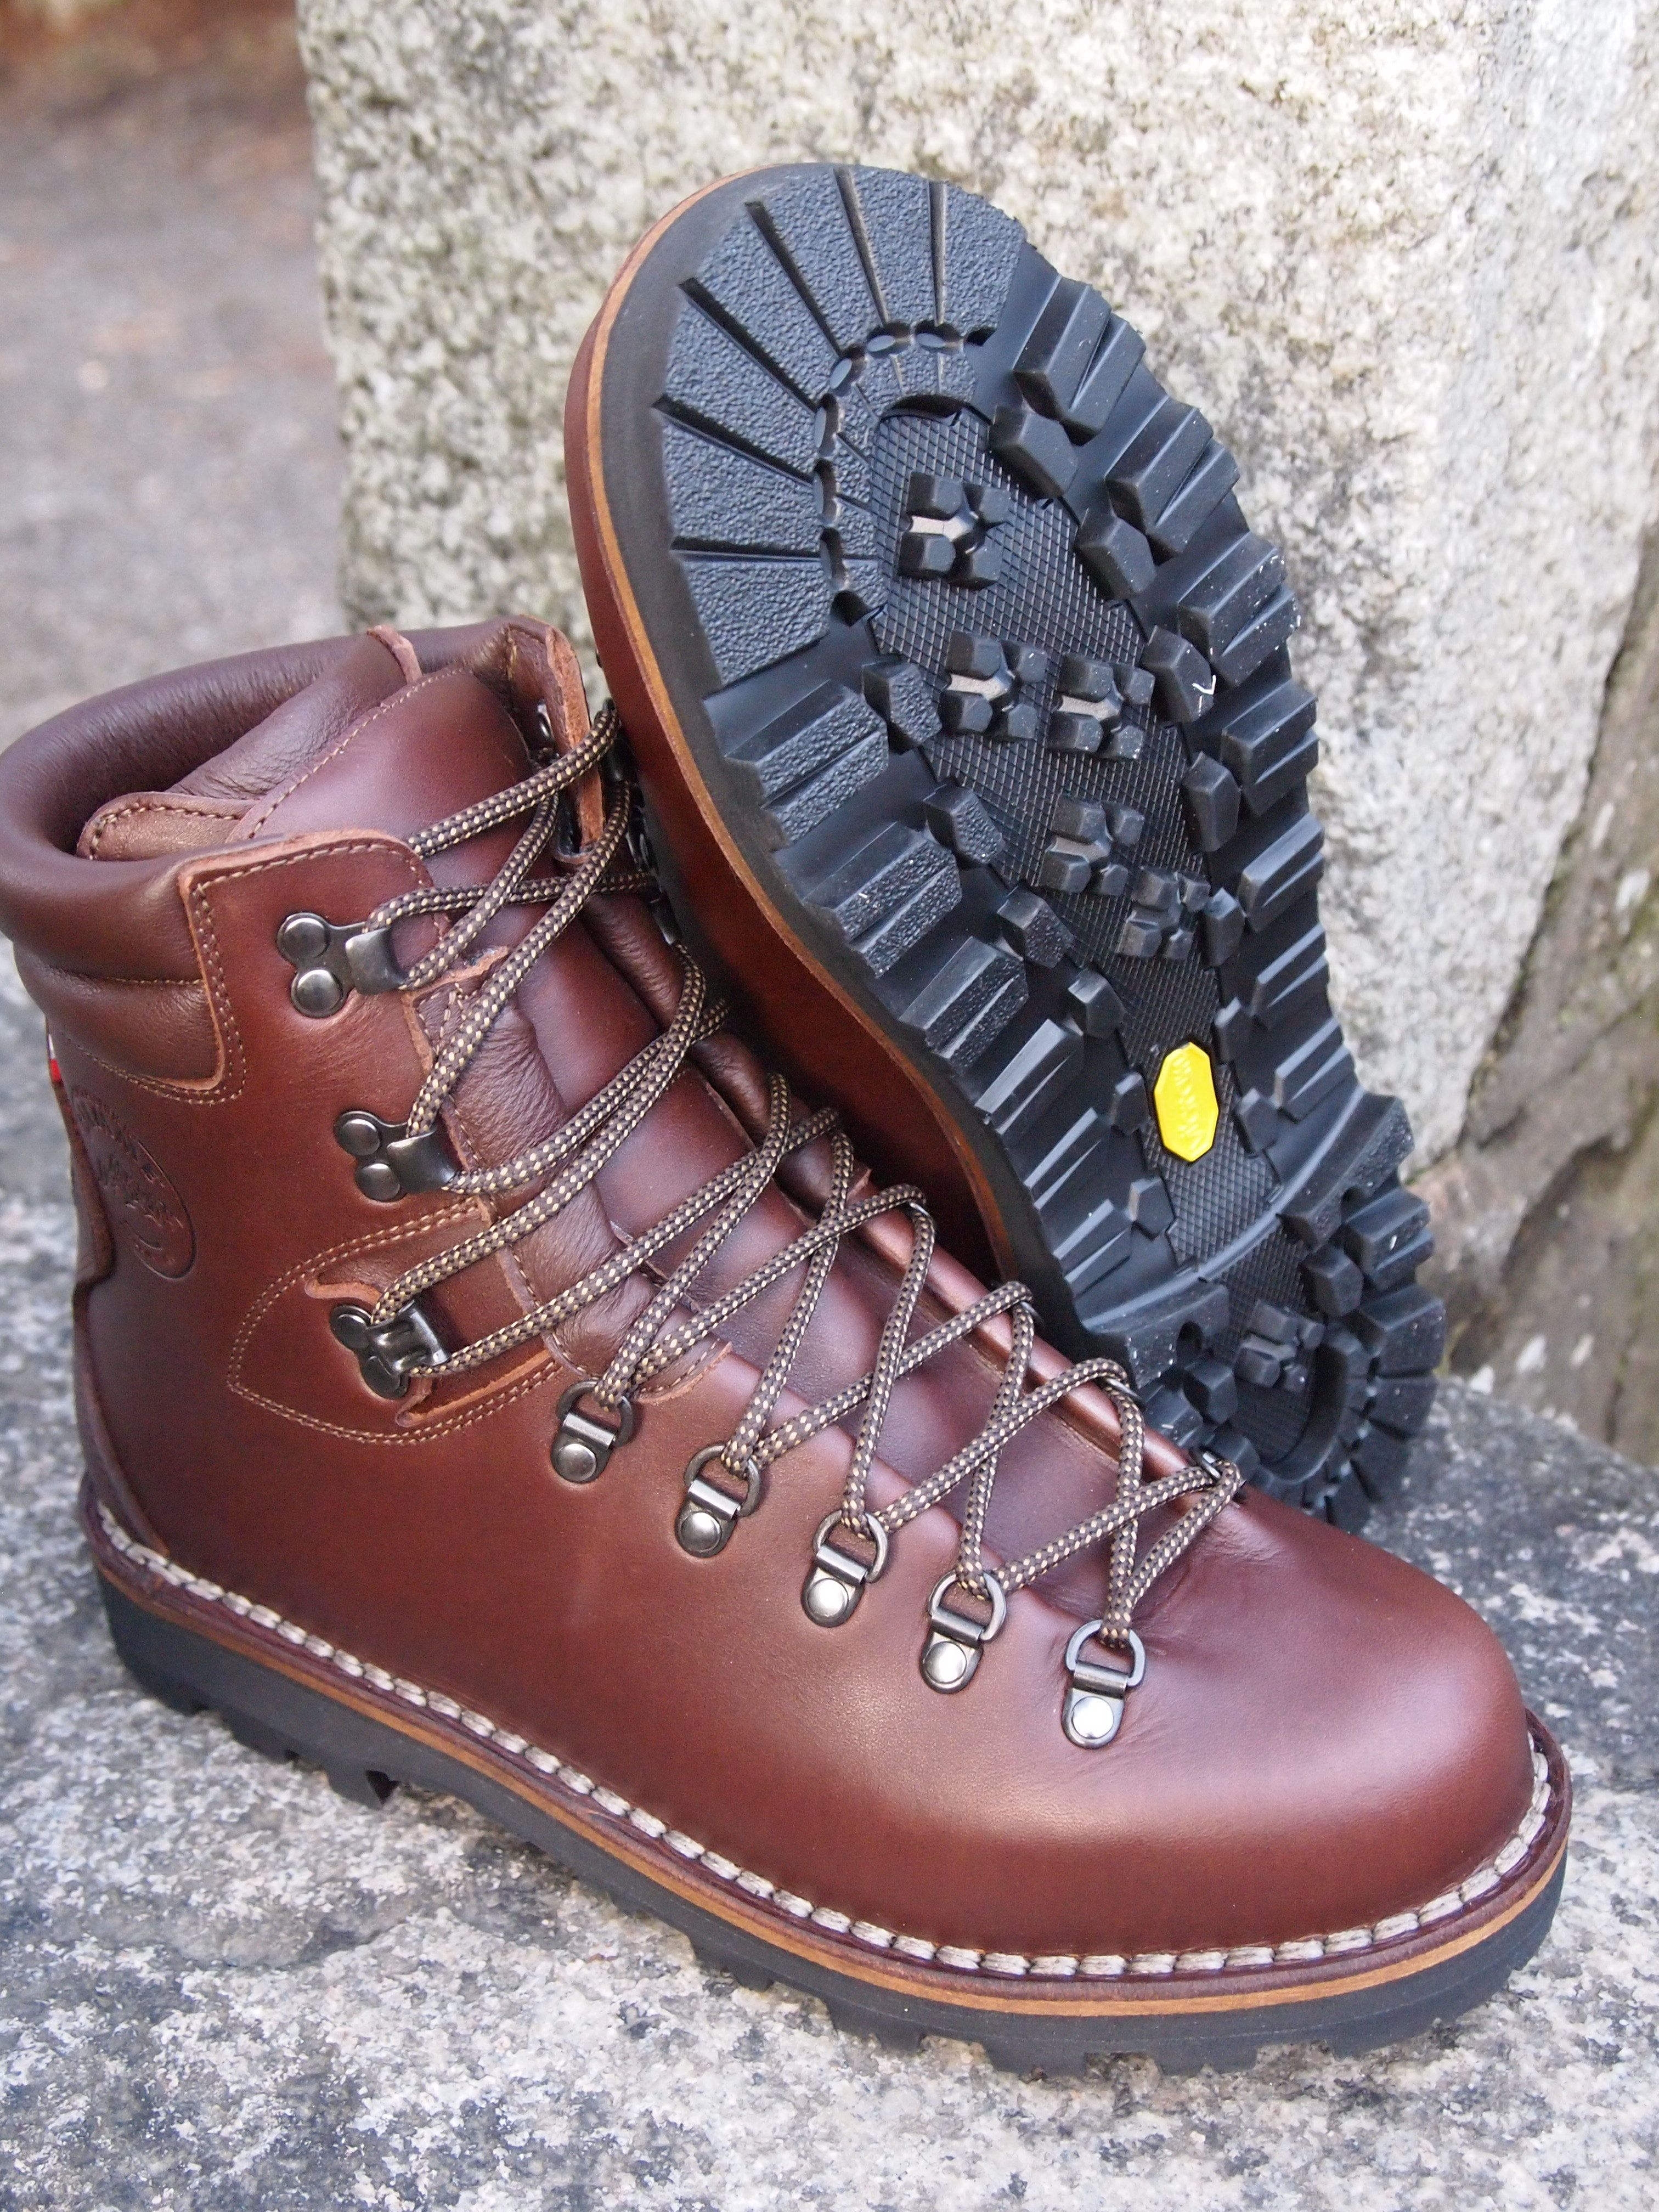 Classic Mountain boots - The Fagiano with Sympatex Lining